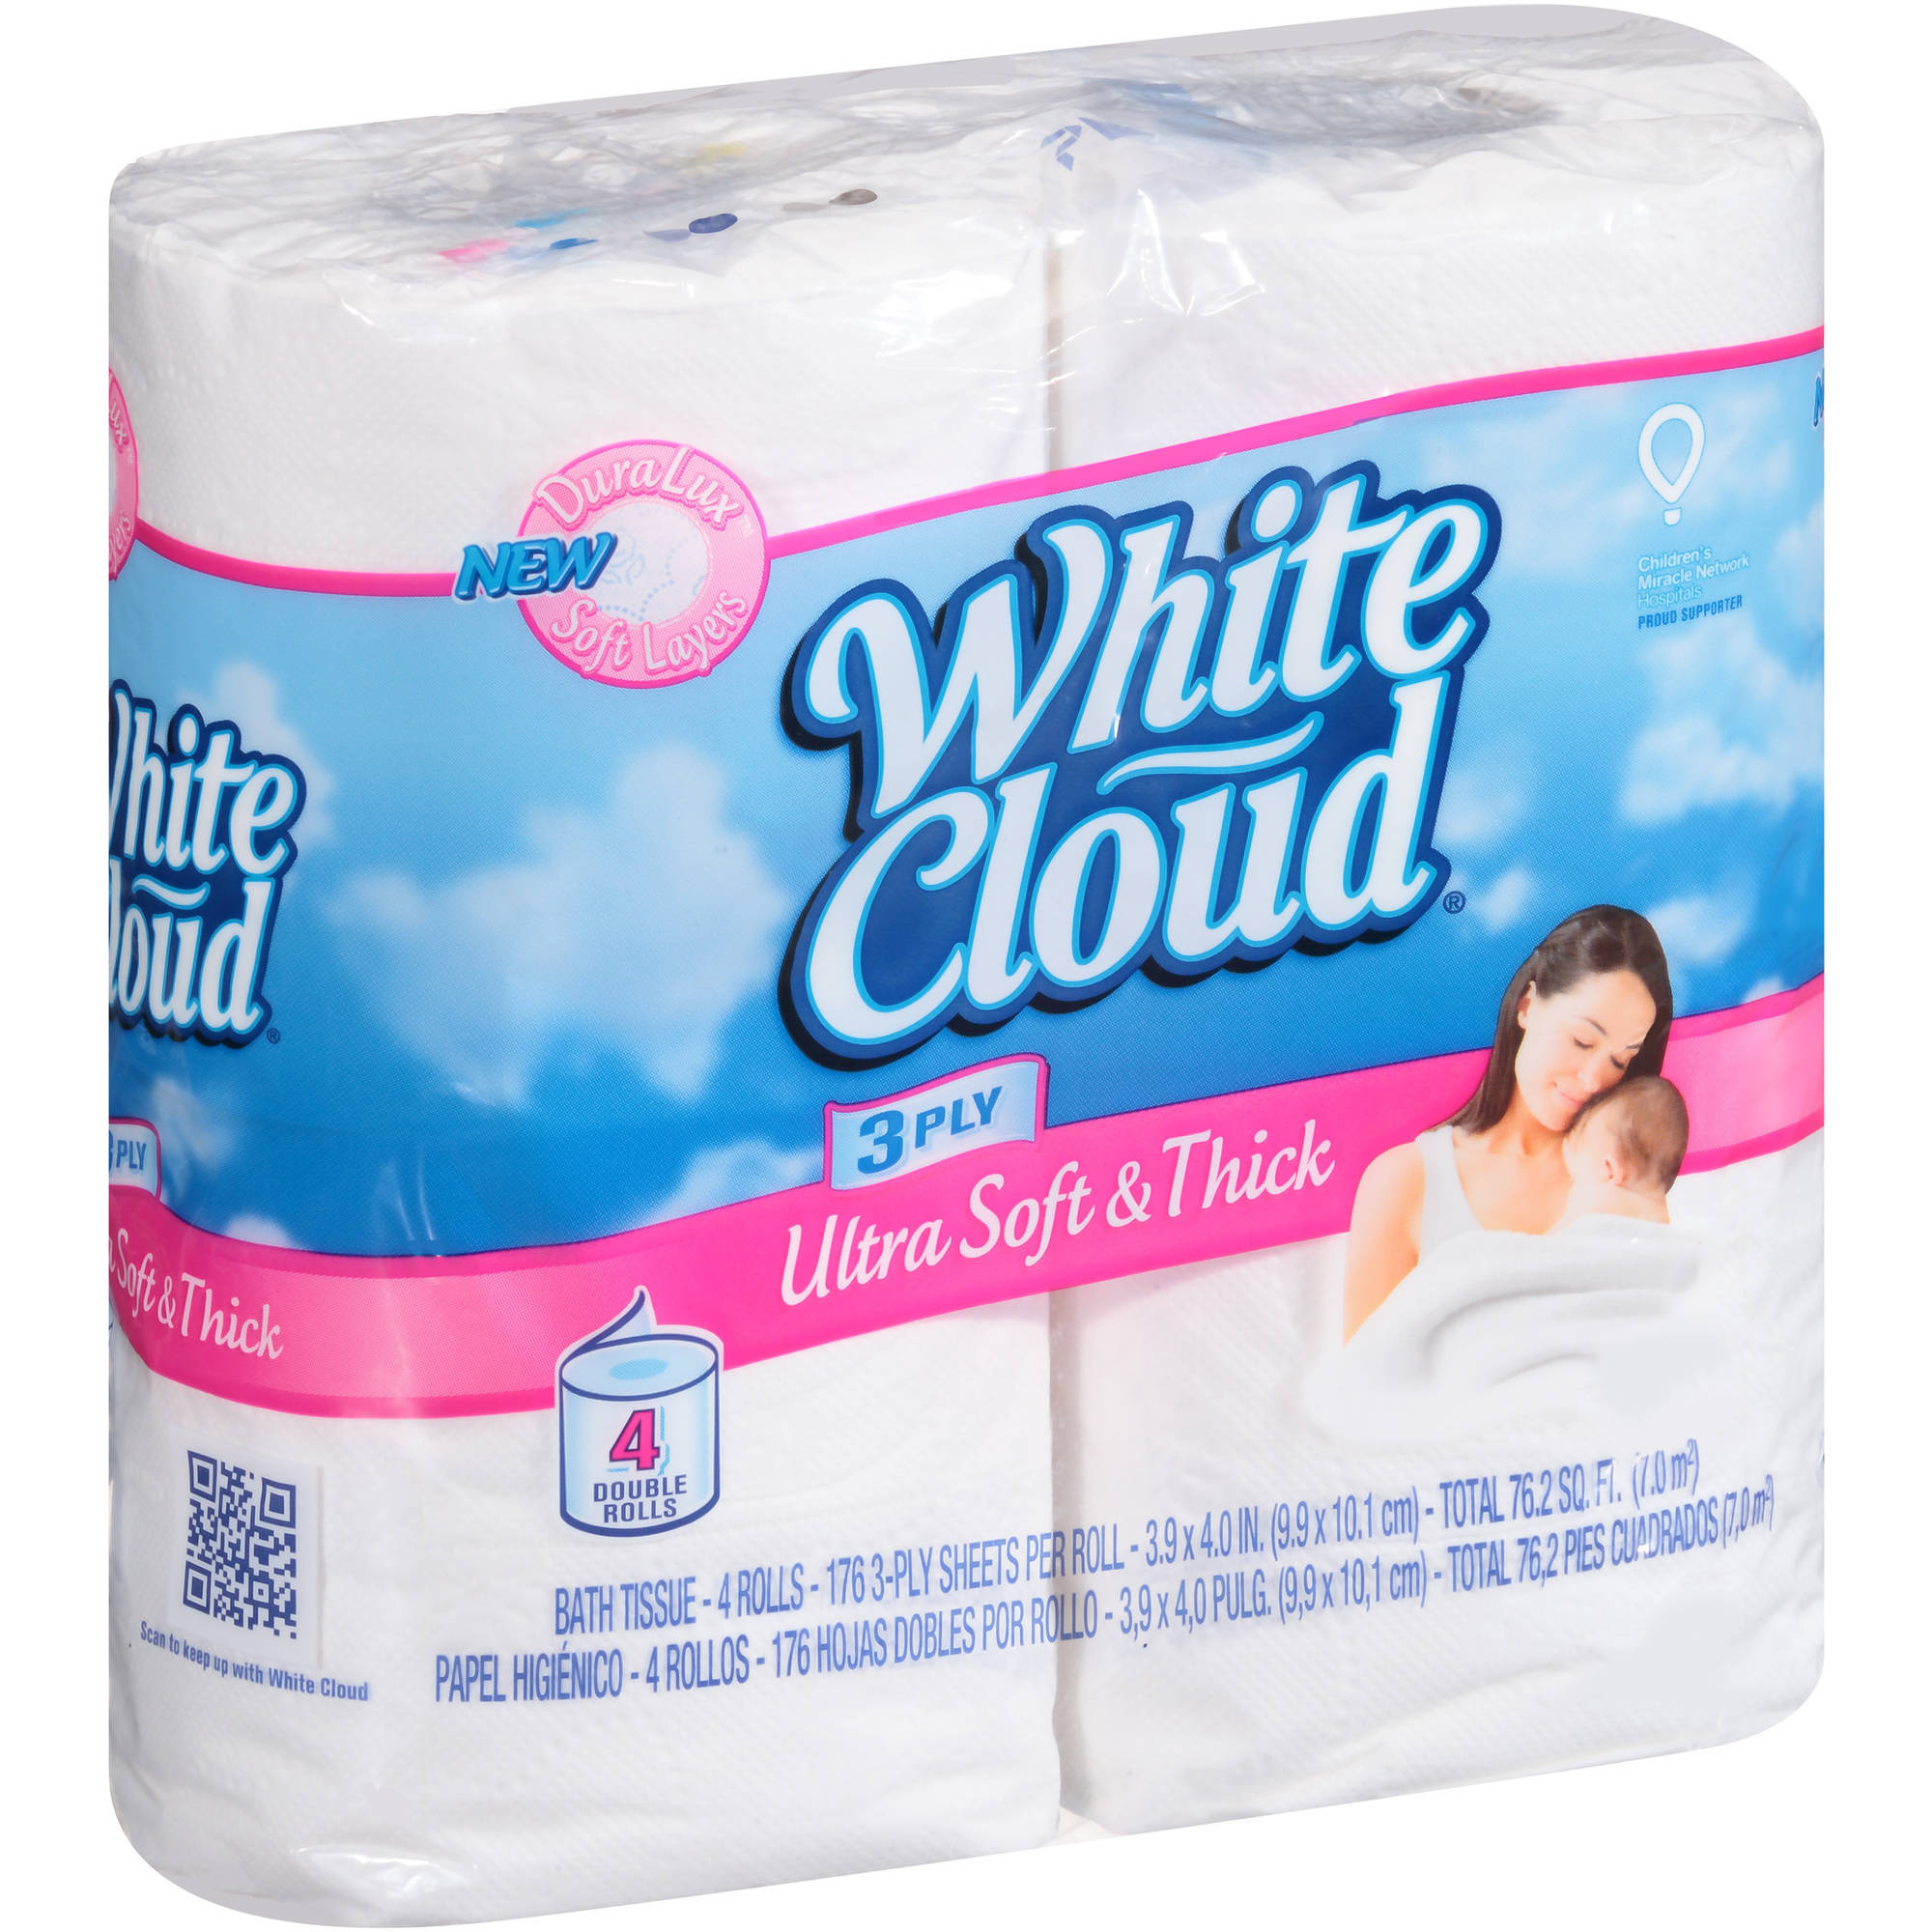 Who Sells White Cloud Toilet Paper